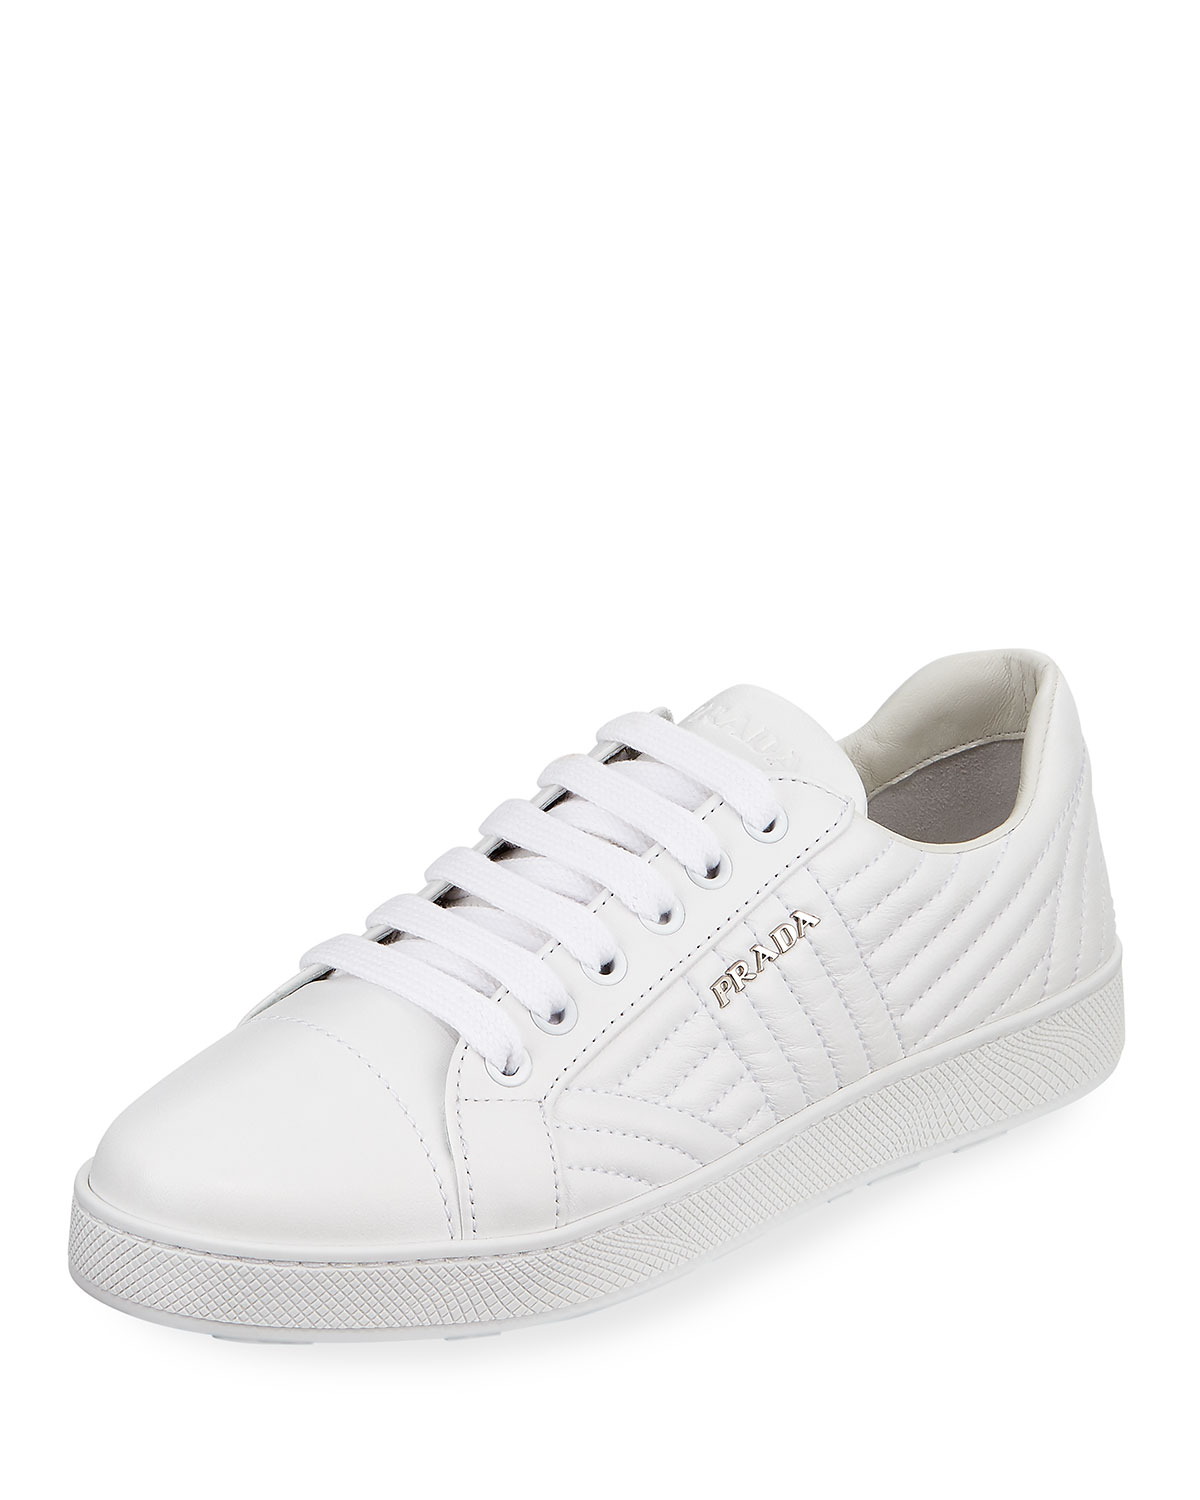 ad9afebc4c91 ... discount clearance lowest price tumblr online prada sport metallic  leather low top sneakers yihyunmlw 86f1e 70d54